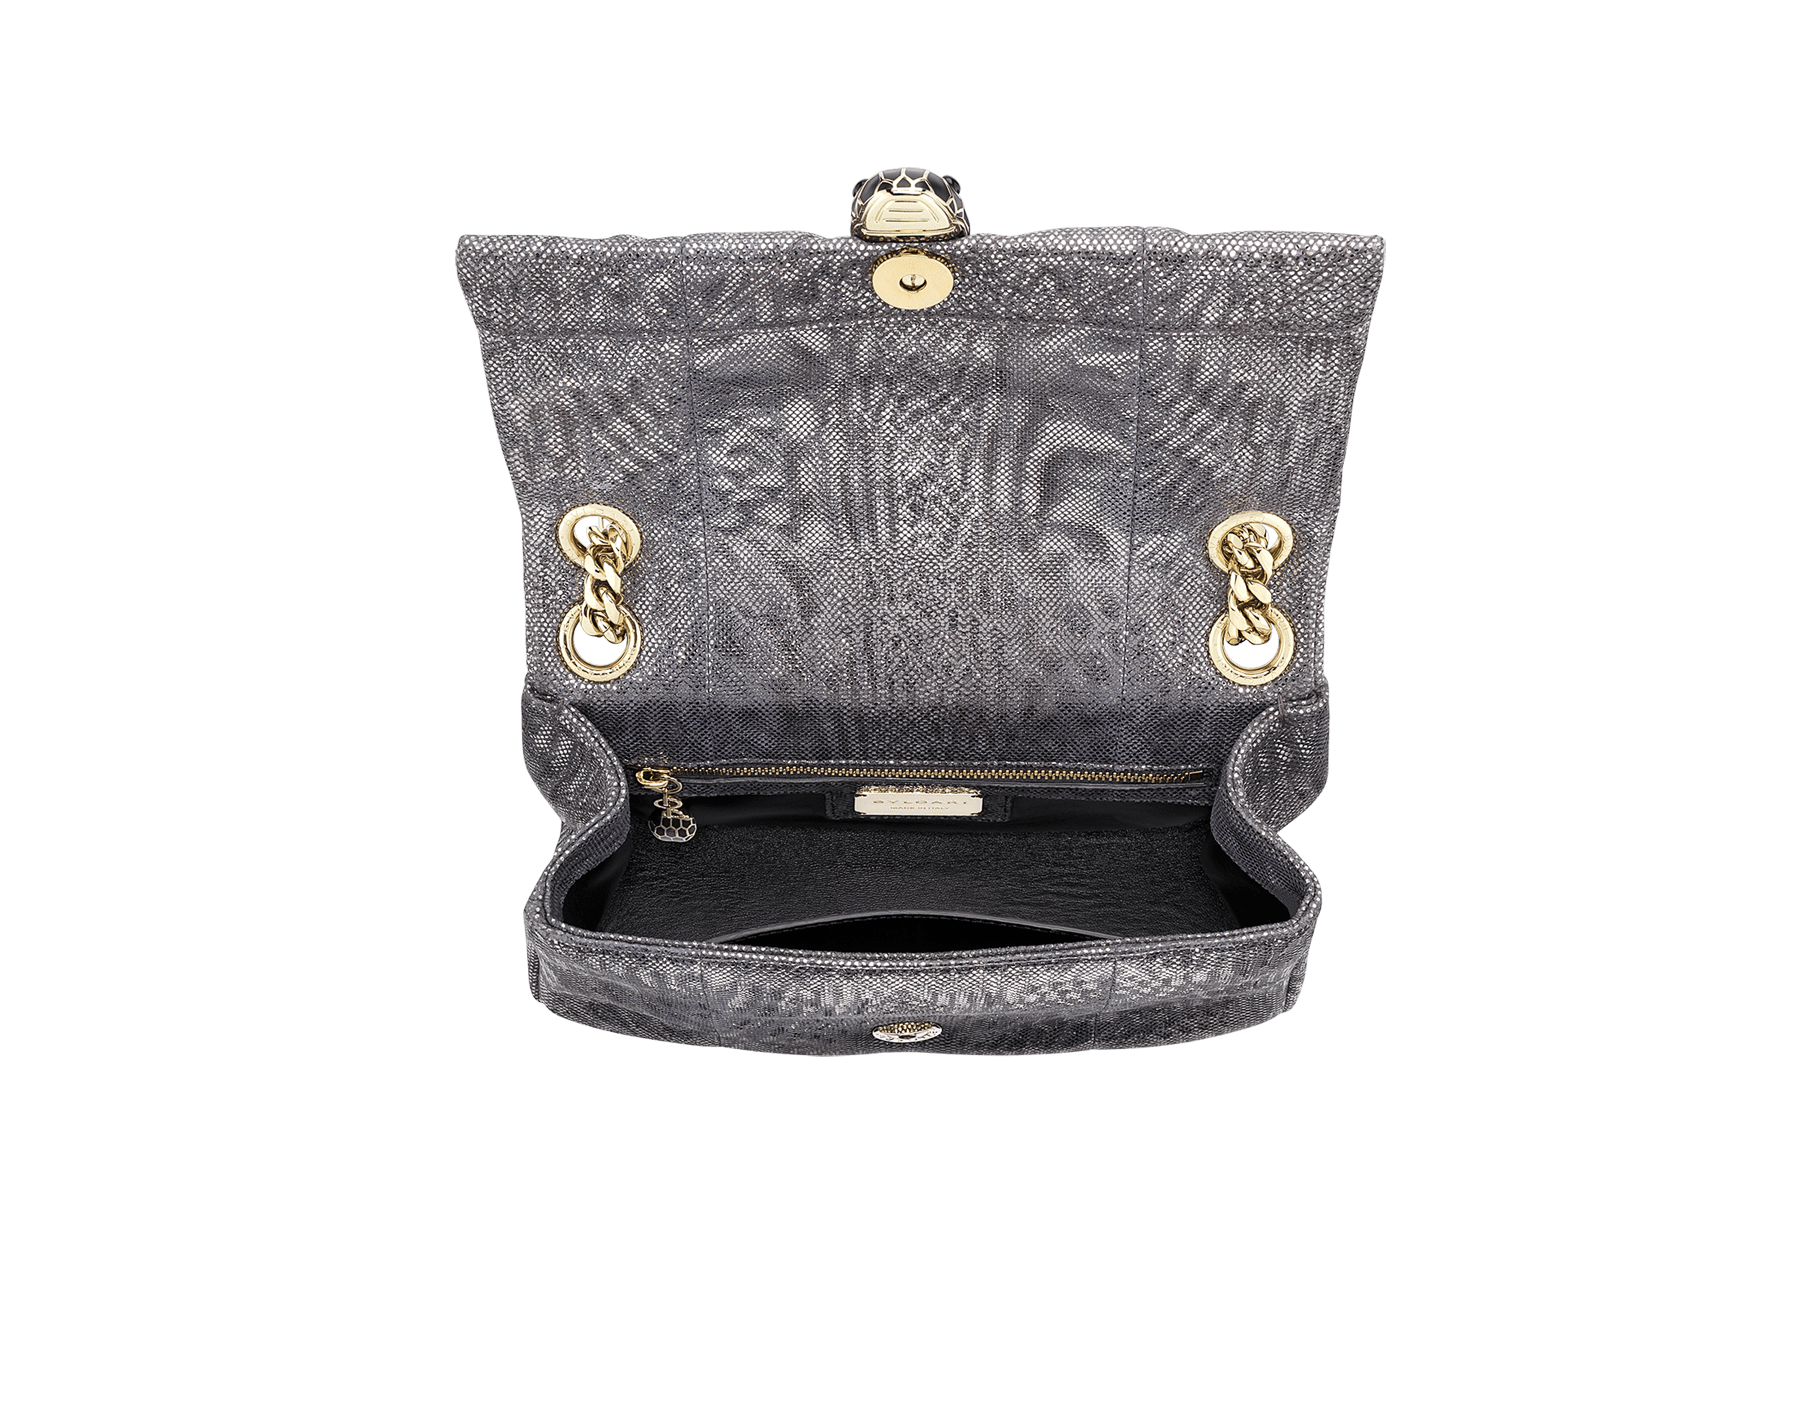 Serpenti Cabochon shoulder bag in soft matelassé charcoal diamond metallic karung skin with graphic motif. Snakehead closure in light gold plated brass decorated with matte black and glitter charcoal diamond enamel, and black onyx eyes. 290237 image 4